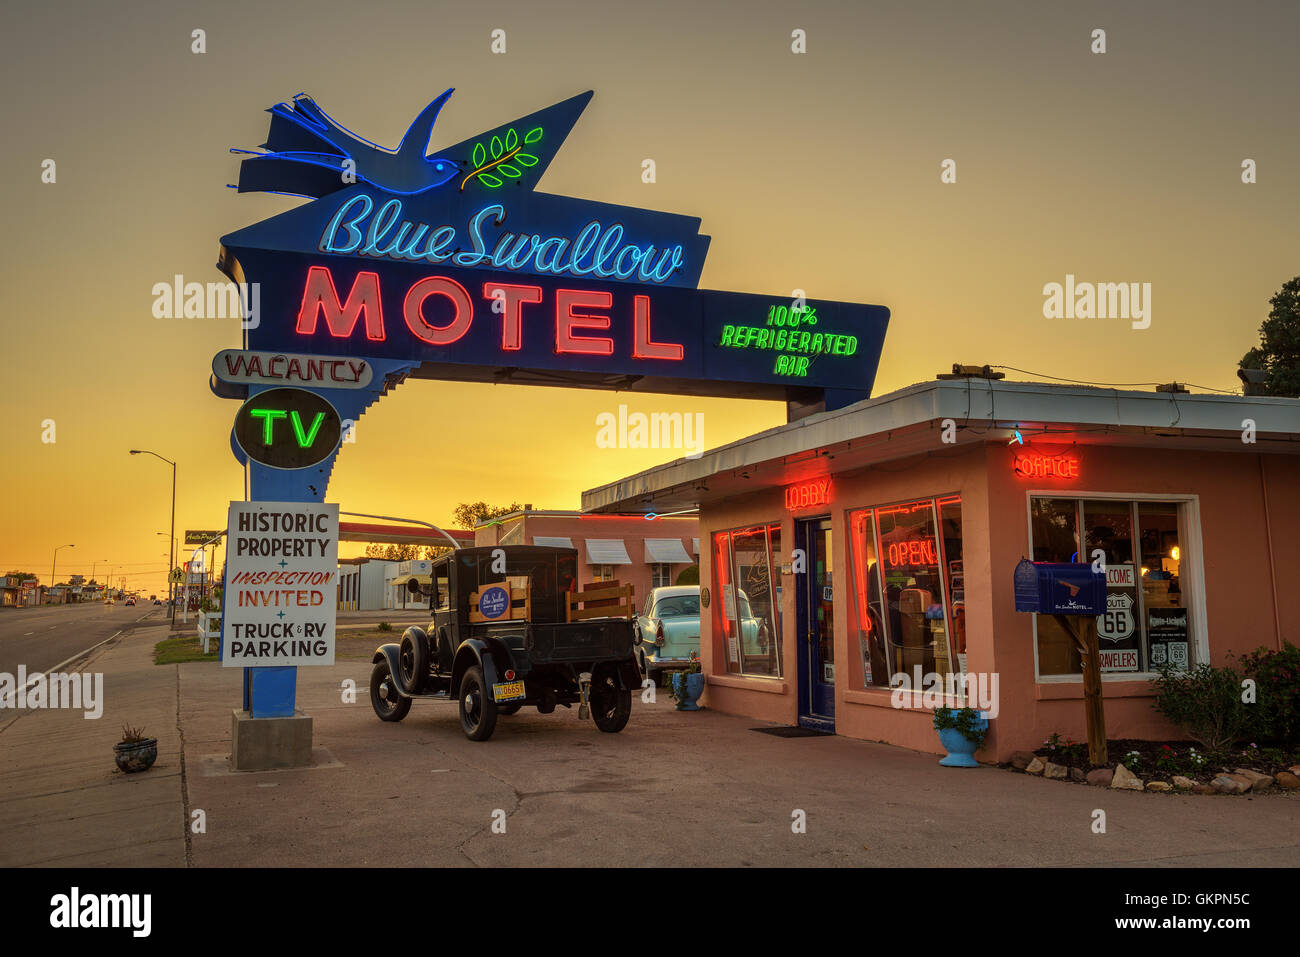 Historic Blue Swallow Motel at sunset - Stock Image